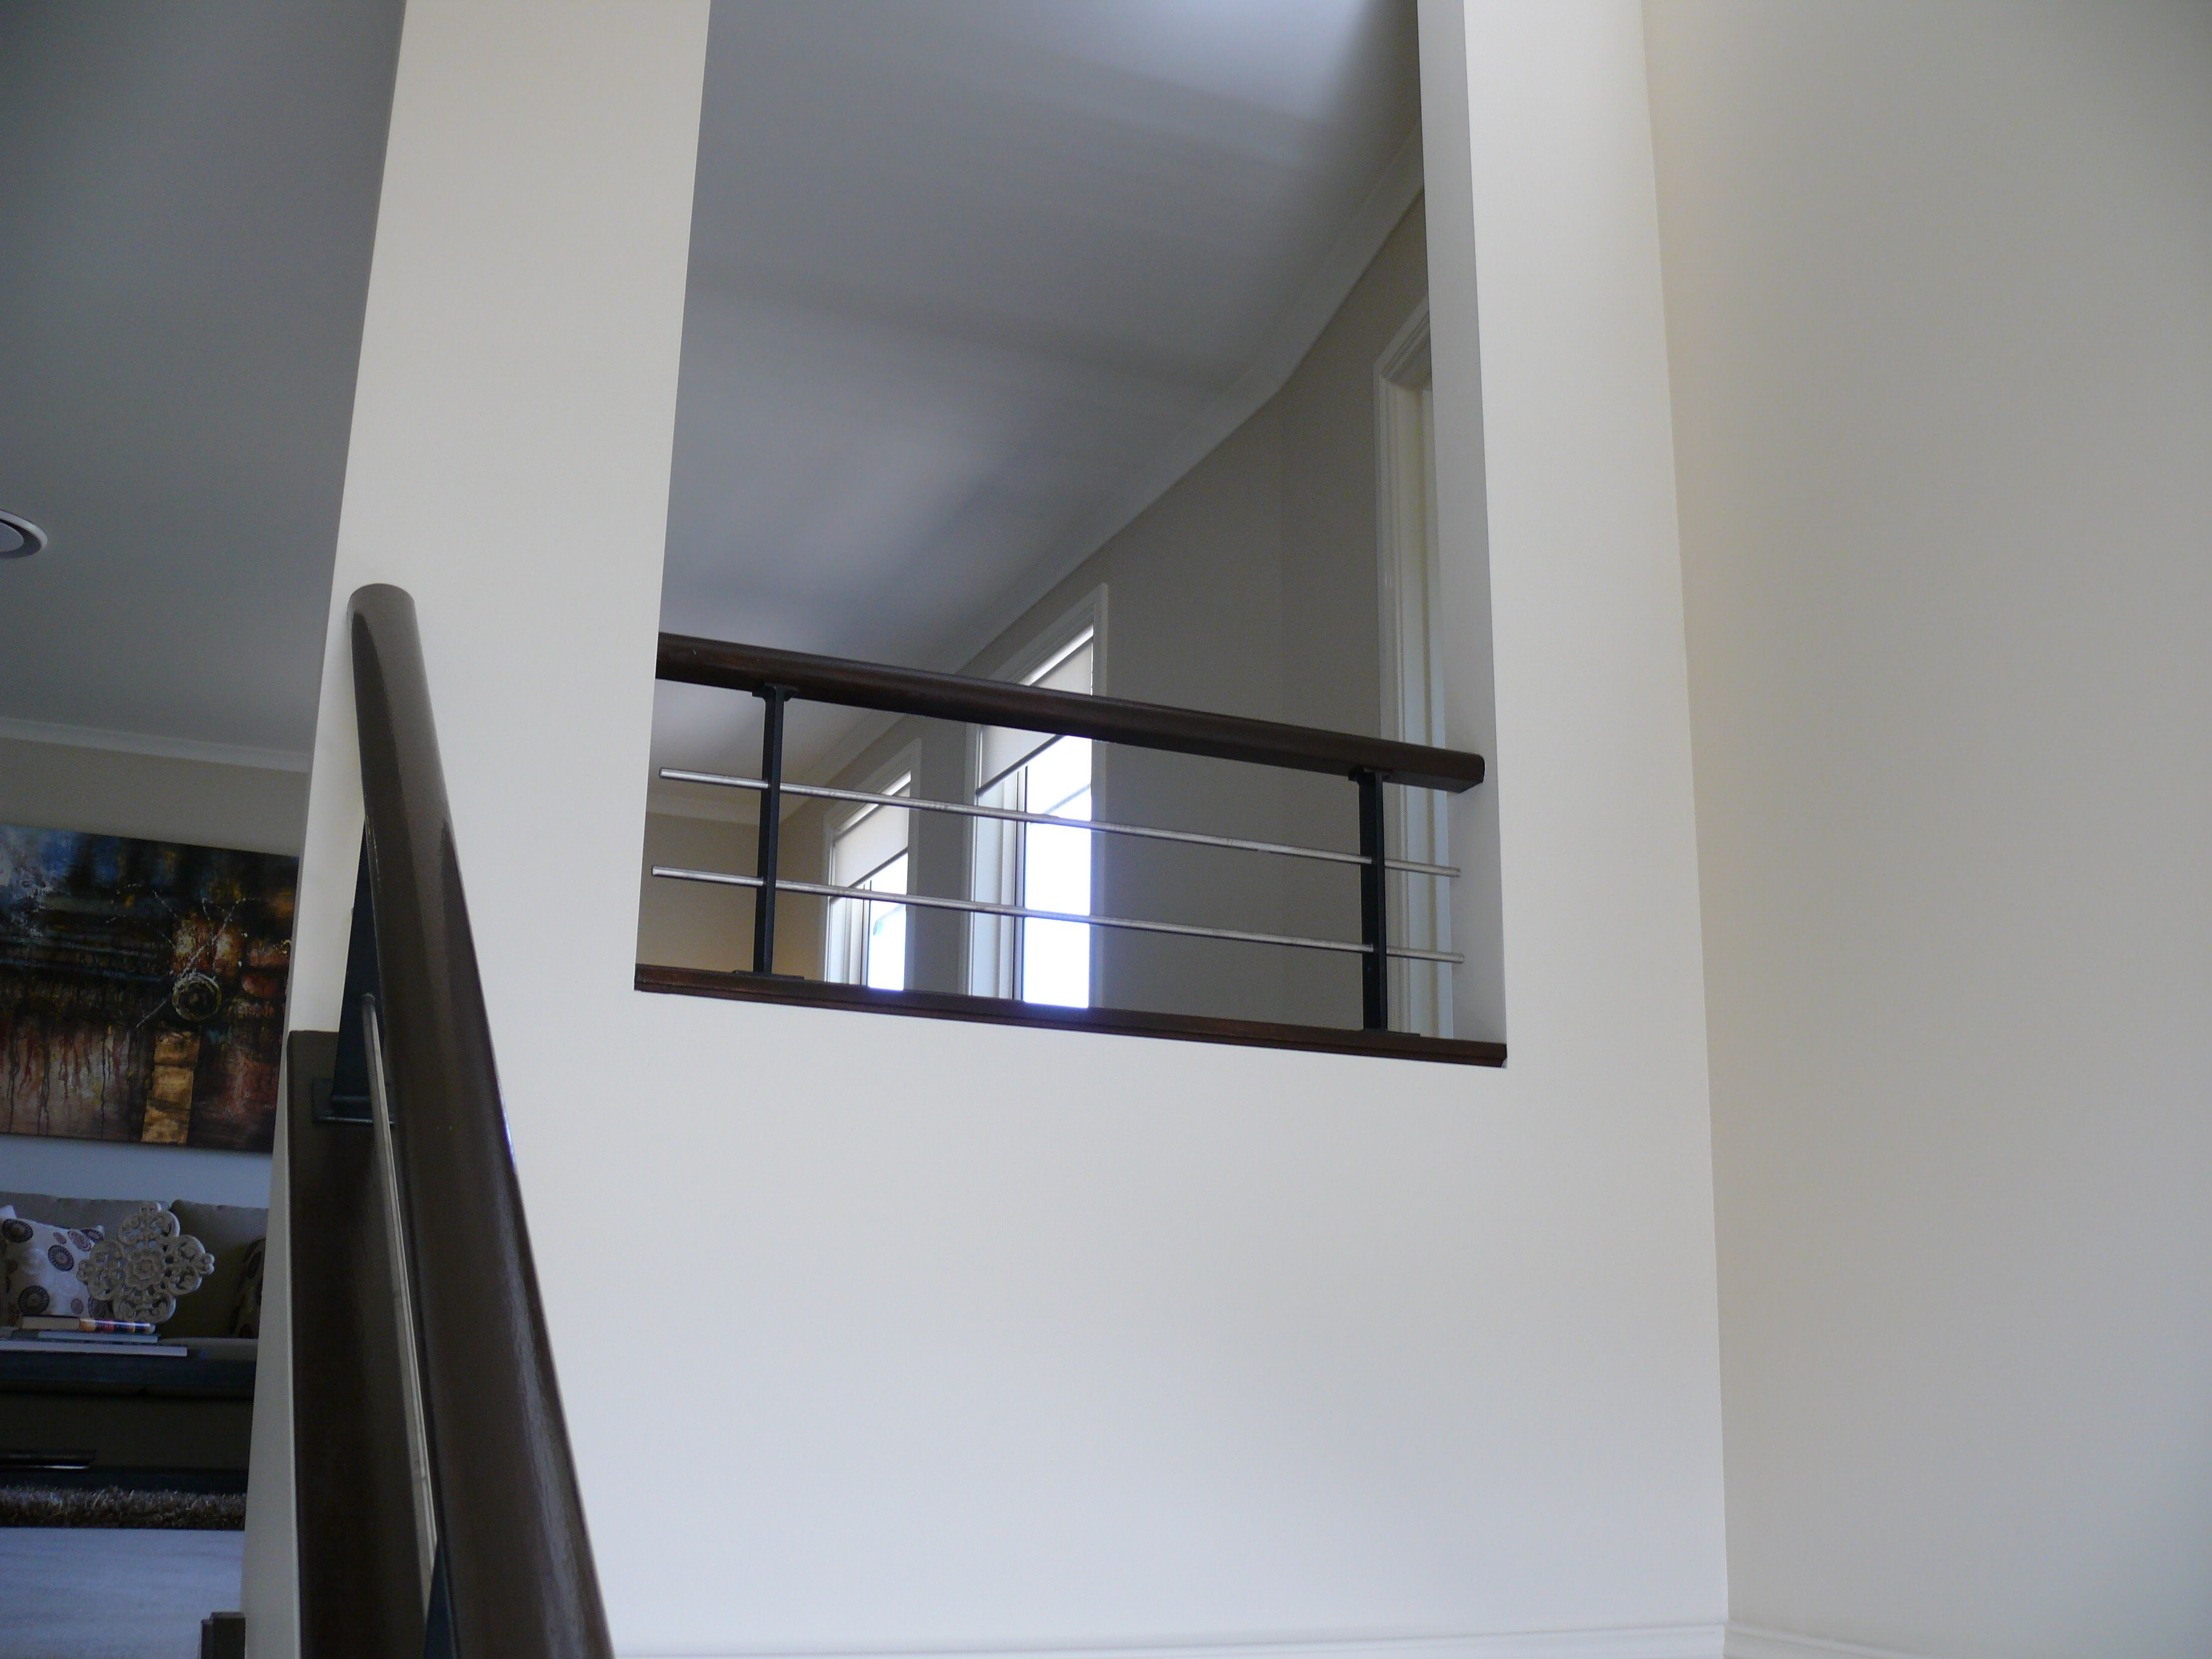 Best Timber Handrail Stainless Steel Rails And Metal Powder Coated Black Posts Stairs Stainless 400 x 300